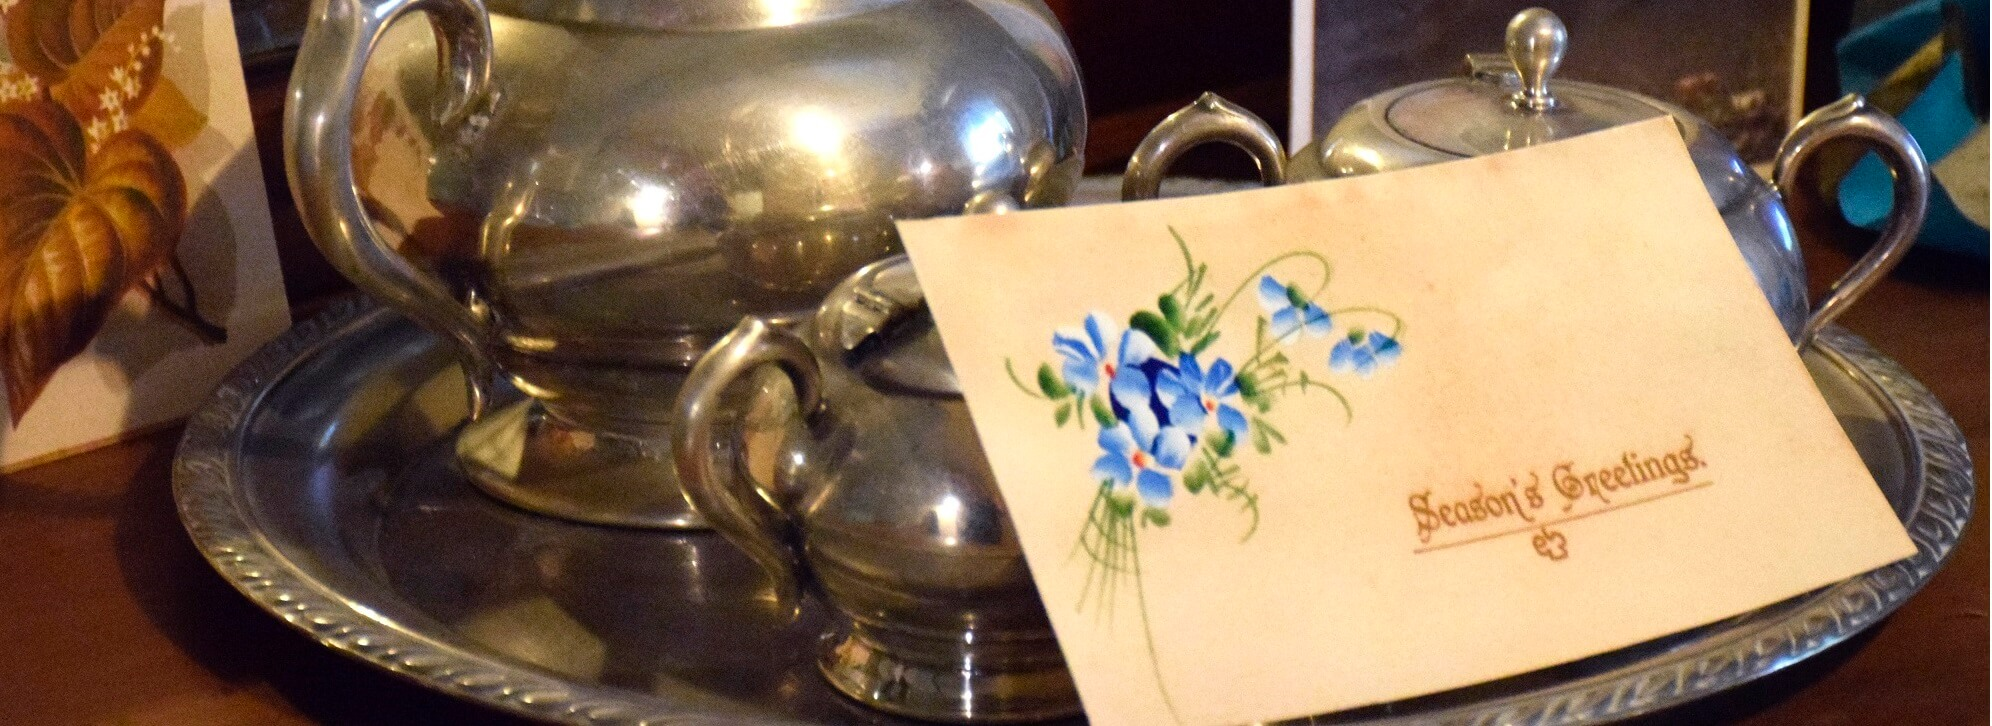 cropped image of silver teapot with old card leaning against it with the words 'Seasons Greetings' and a blue flower in the corner. Part of the Christmas at the Old Treasury Building 2018 display